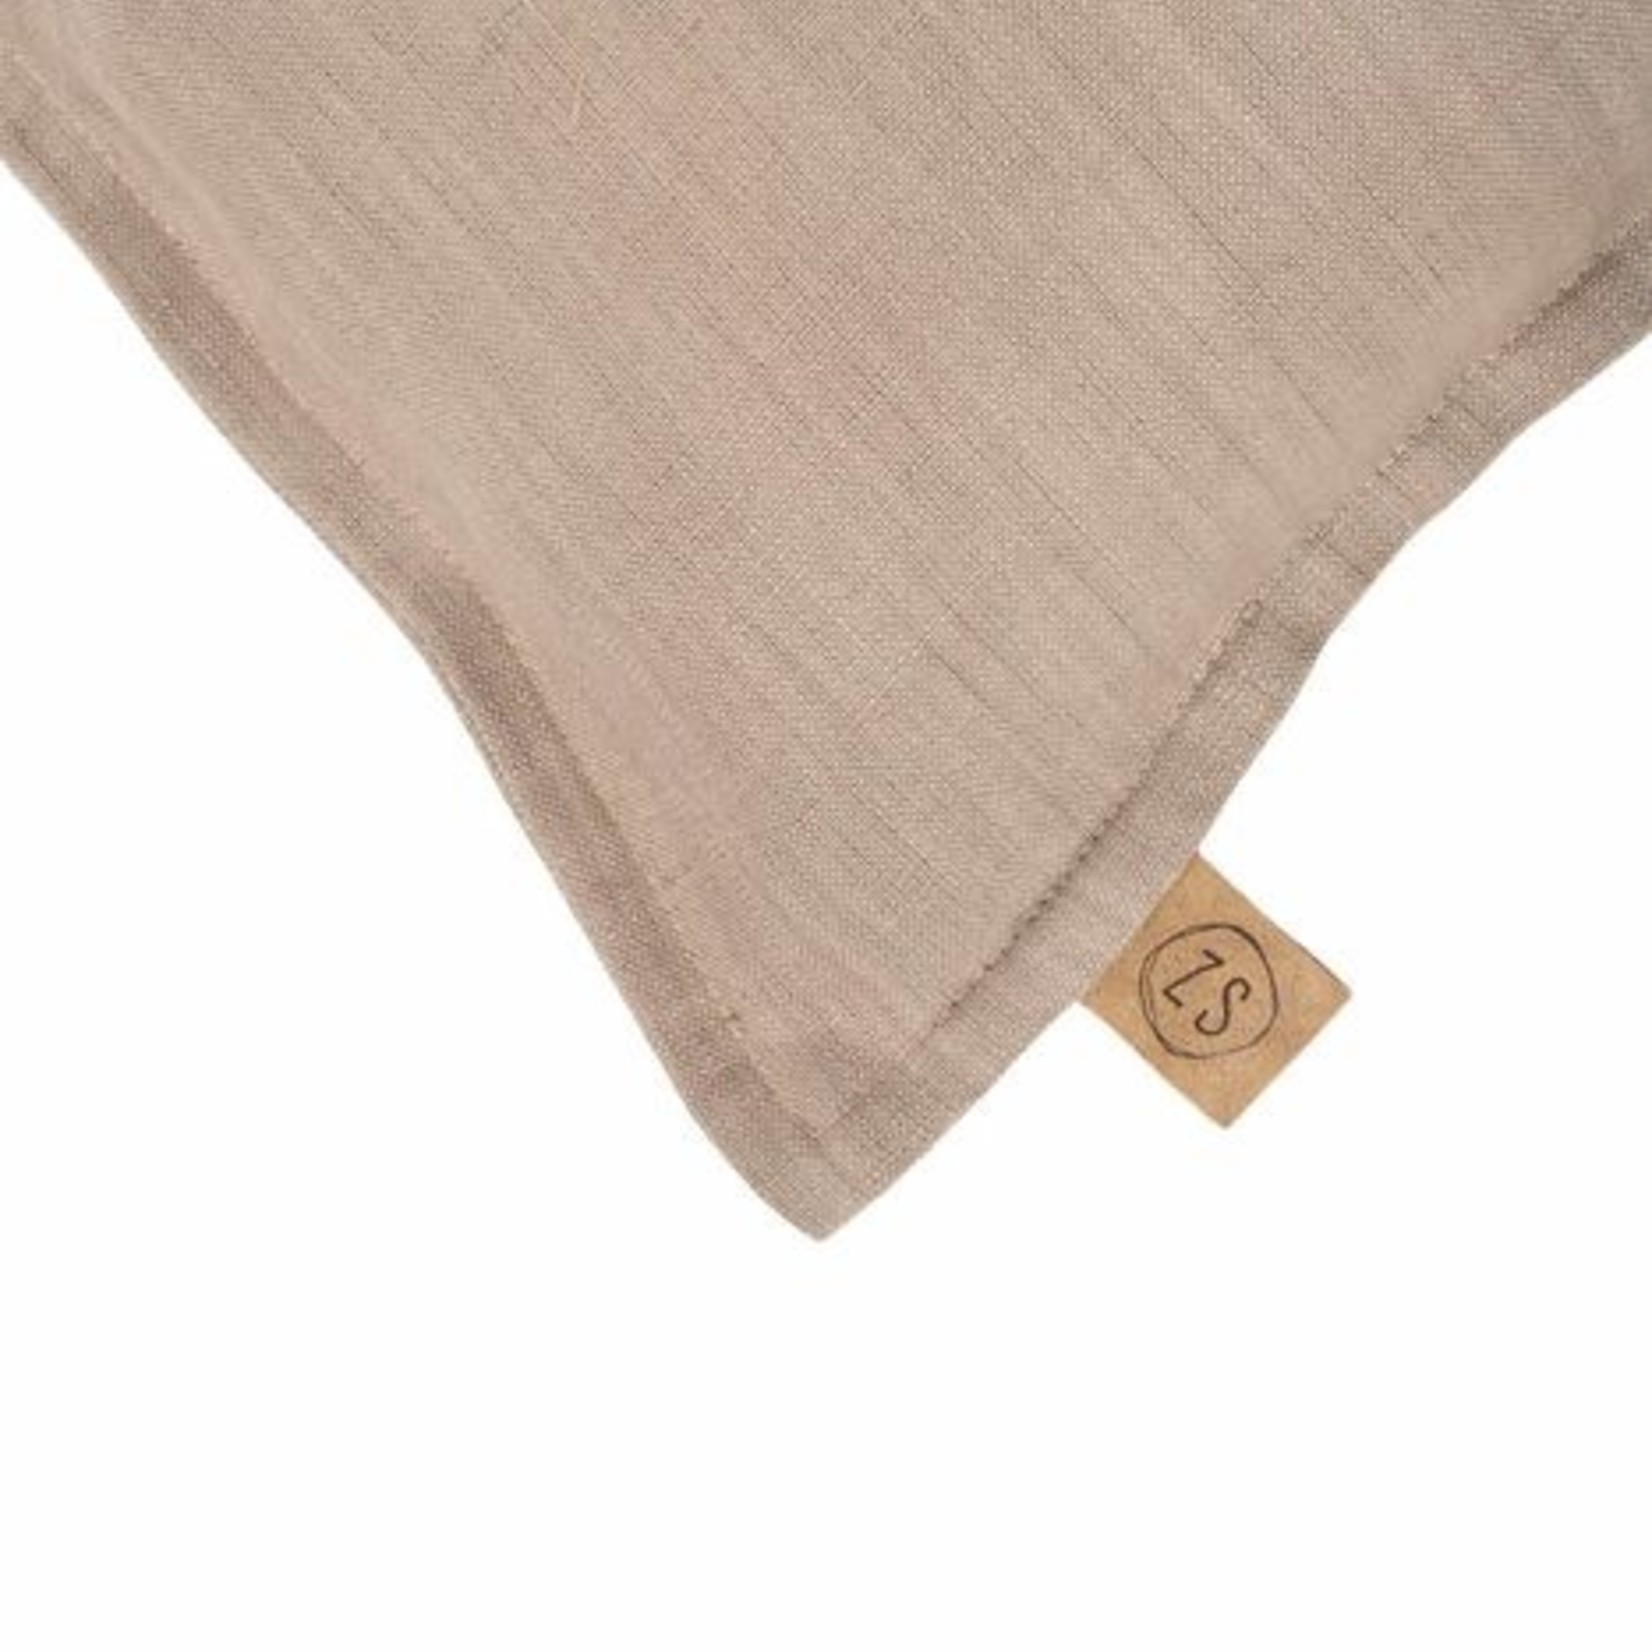 Zusss Kussen - It's oke to be happy - 35x25cm - Taupe